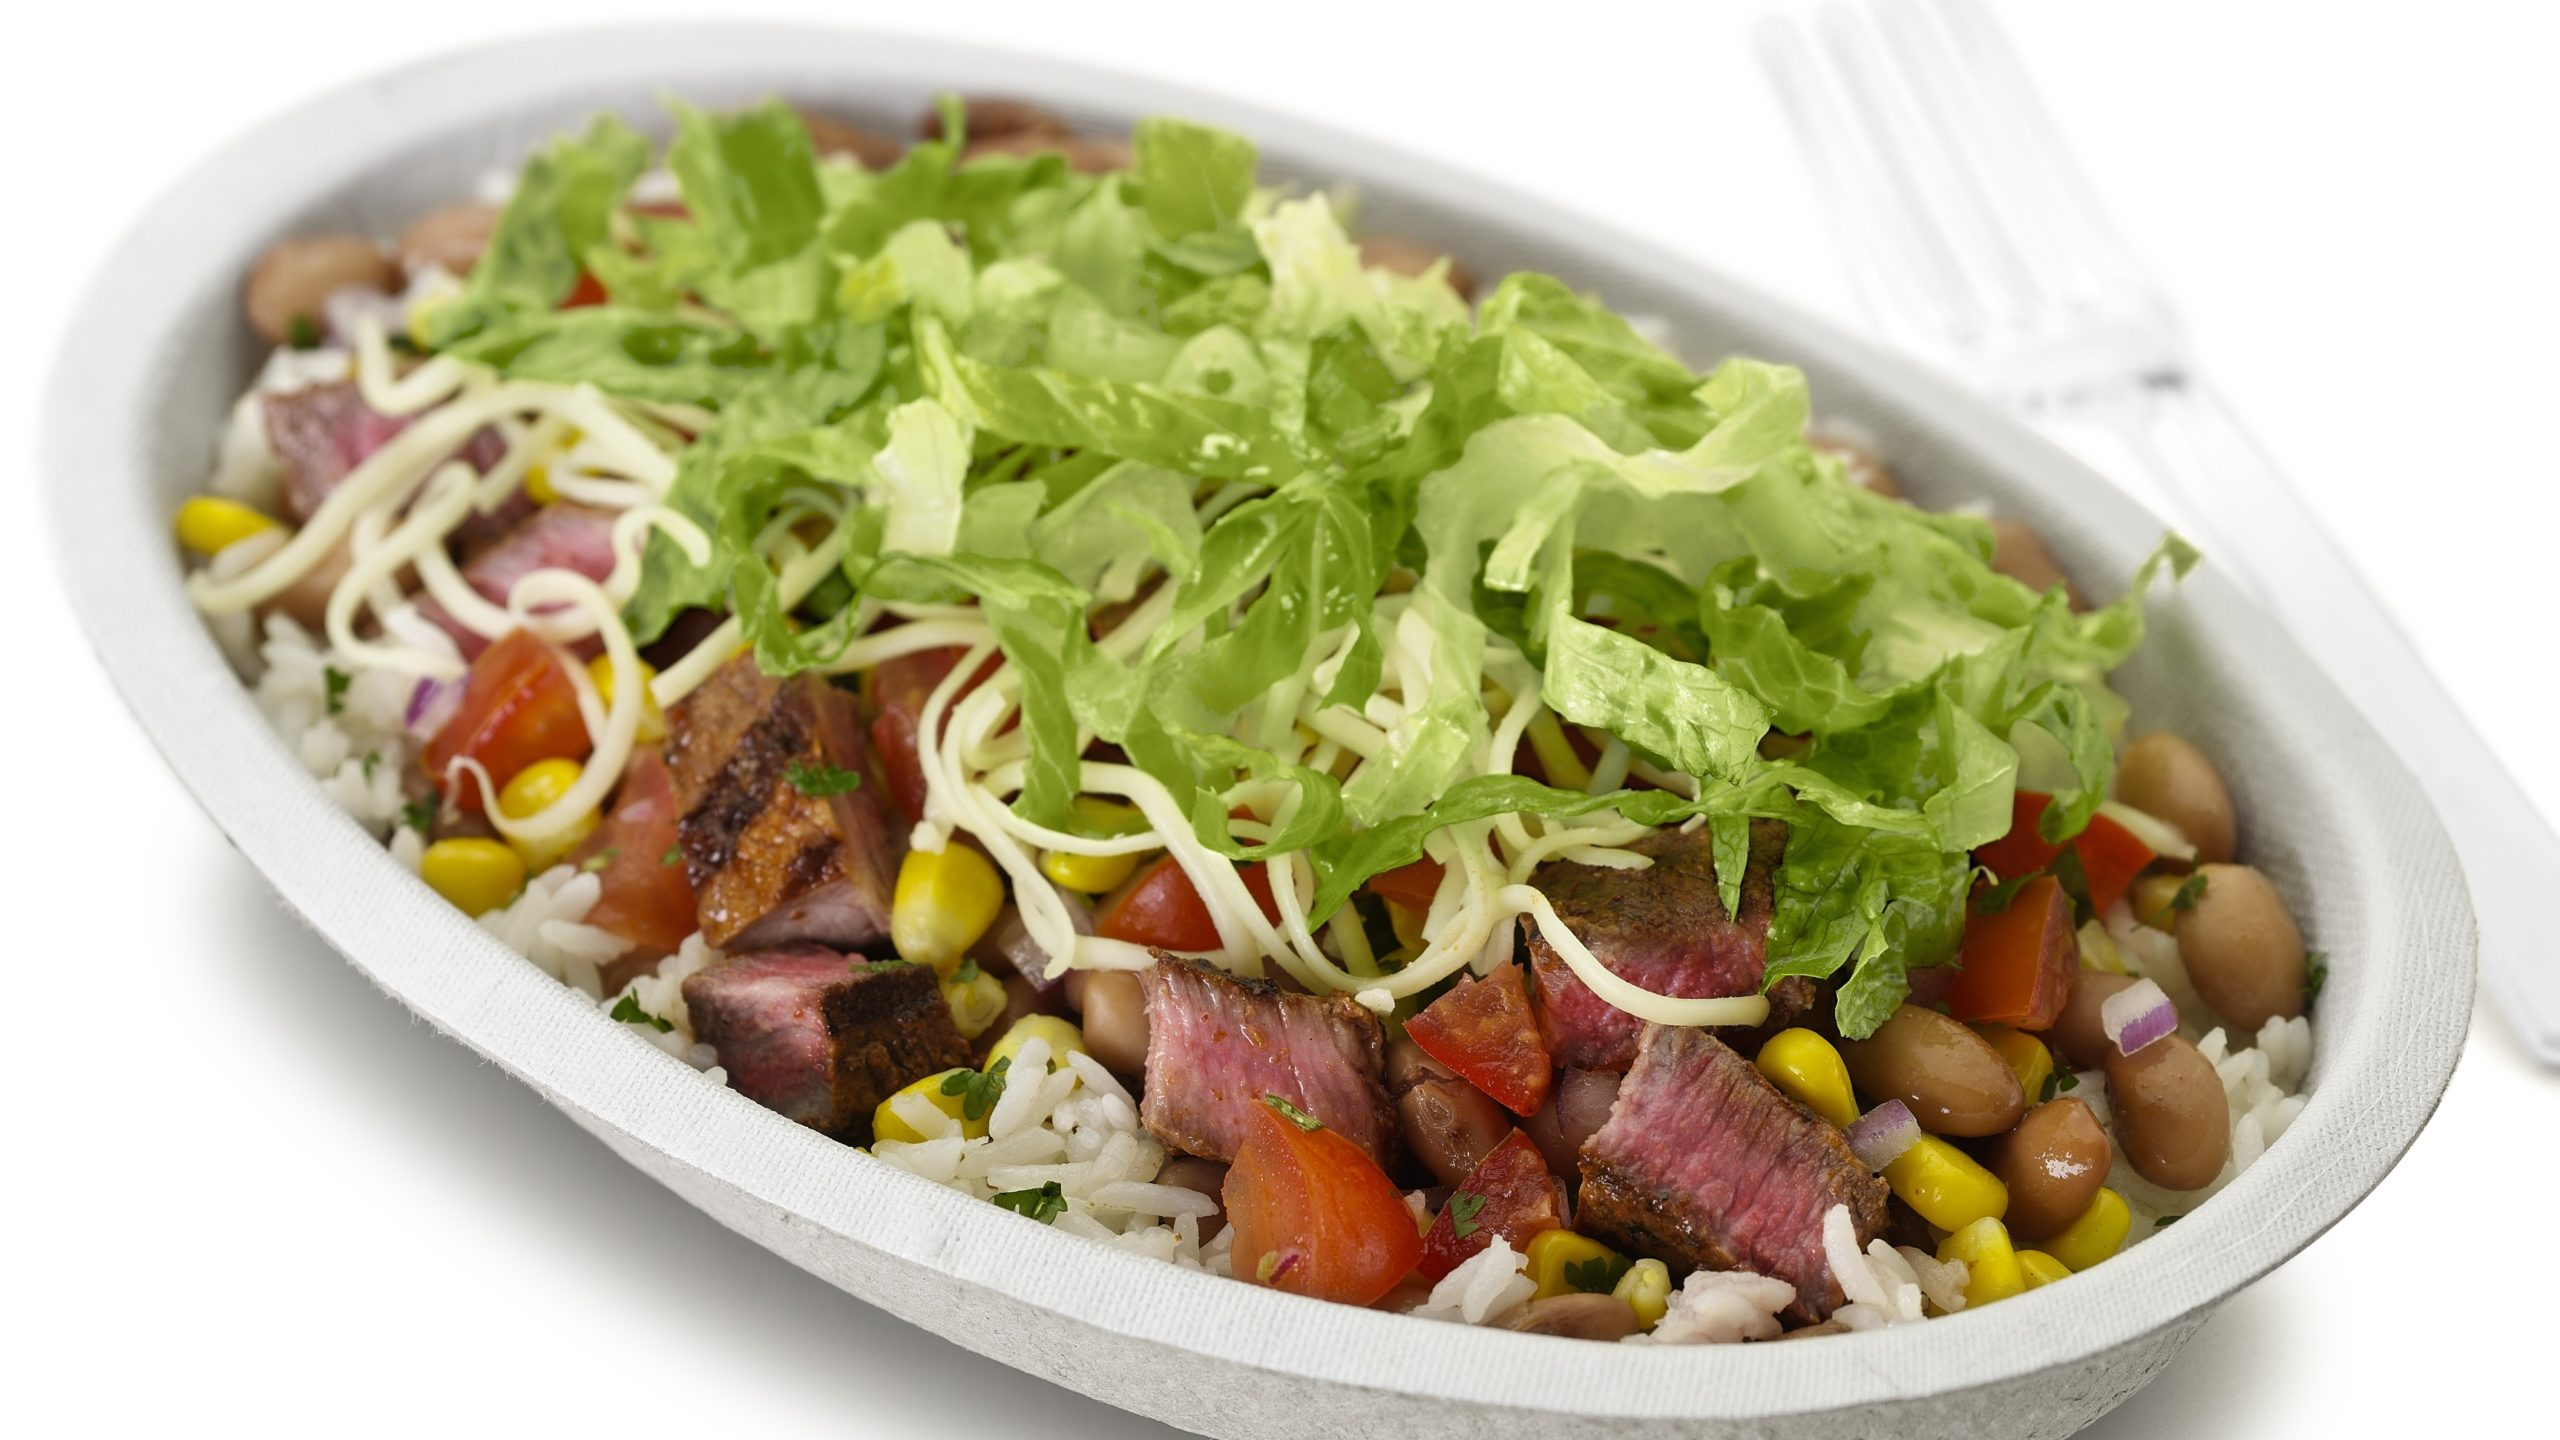 Health benefits of chipotle